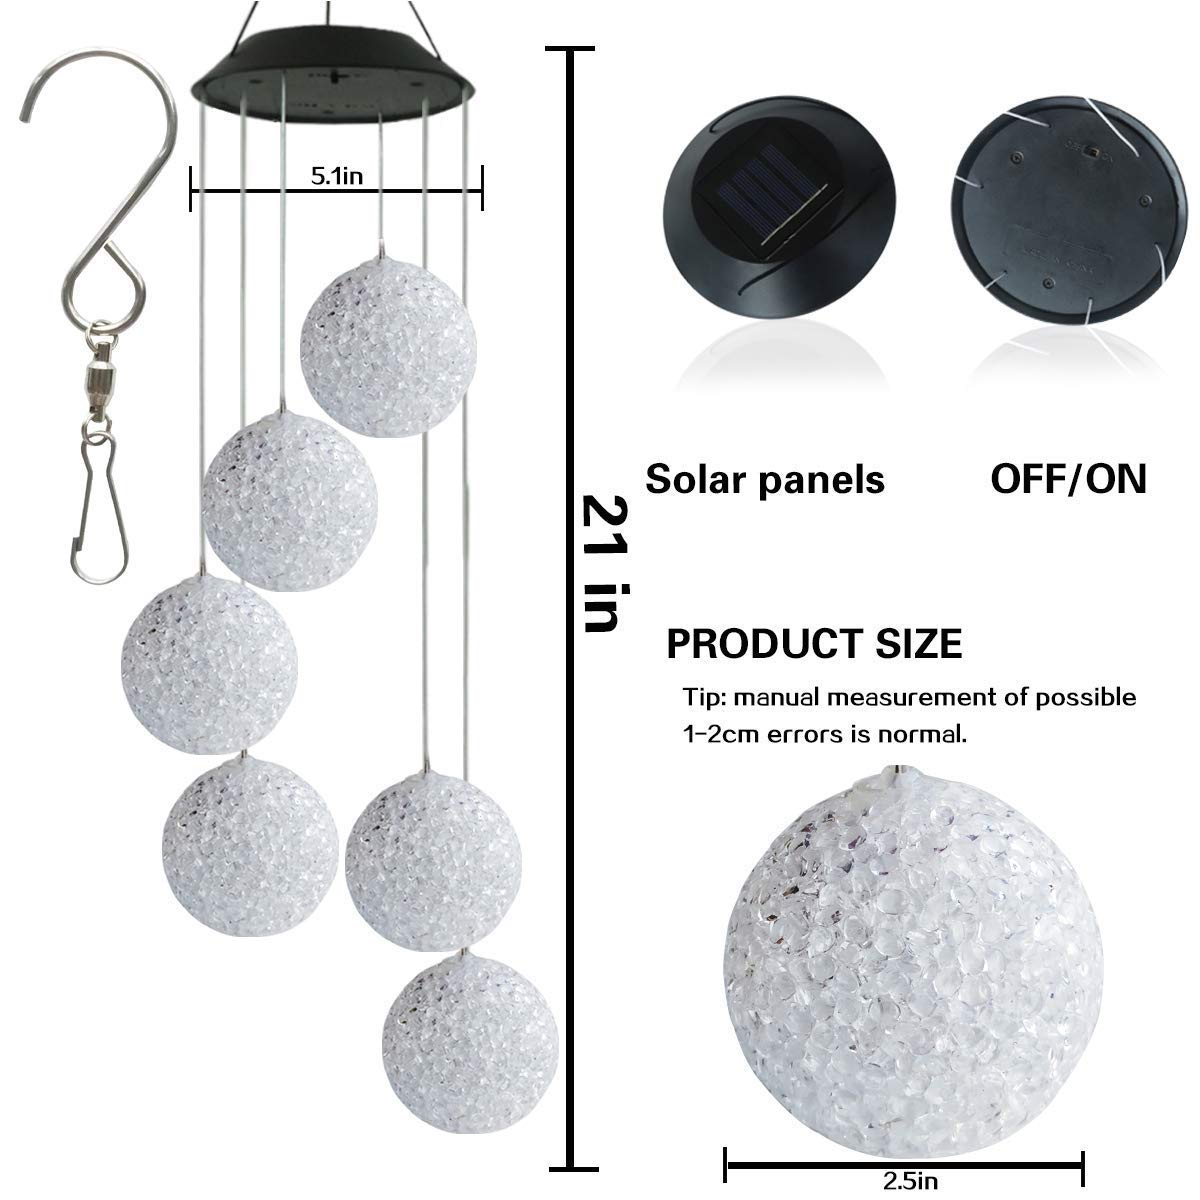 Wind Chime BINWO Solar Wind Chimes Spiral Spinner Crystal Ball Wind Mobile Waterproof Outdoor Decorative Hanging Wind Bell Color Changing Light for Mum Gift or Patio Yard Garden Home Decoration